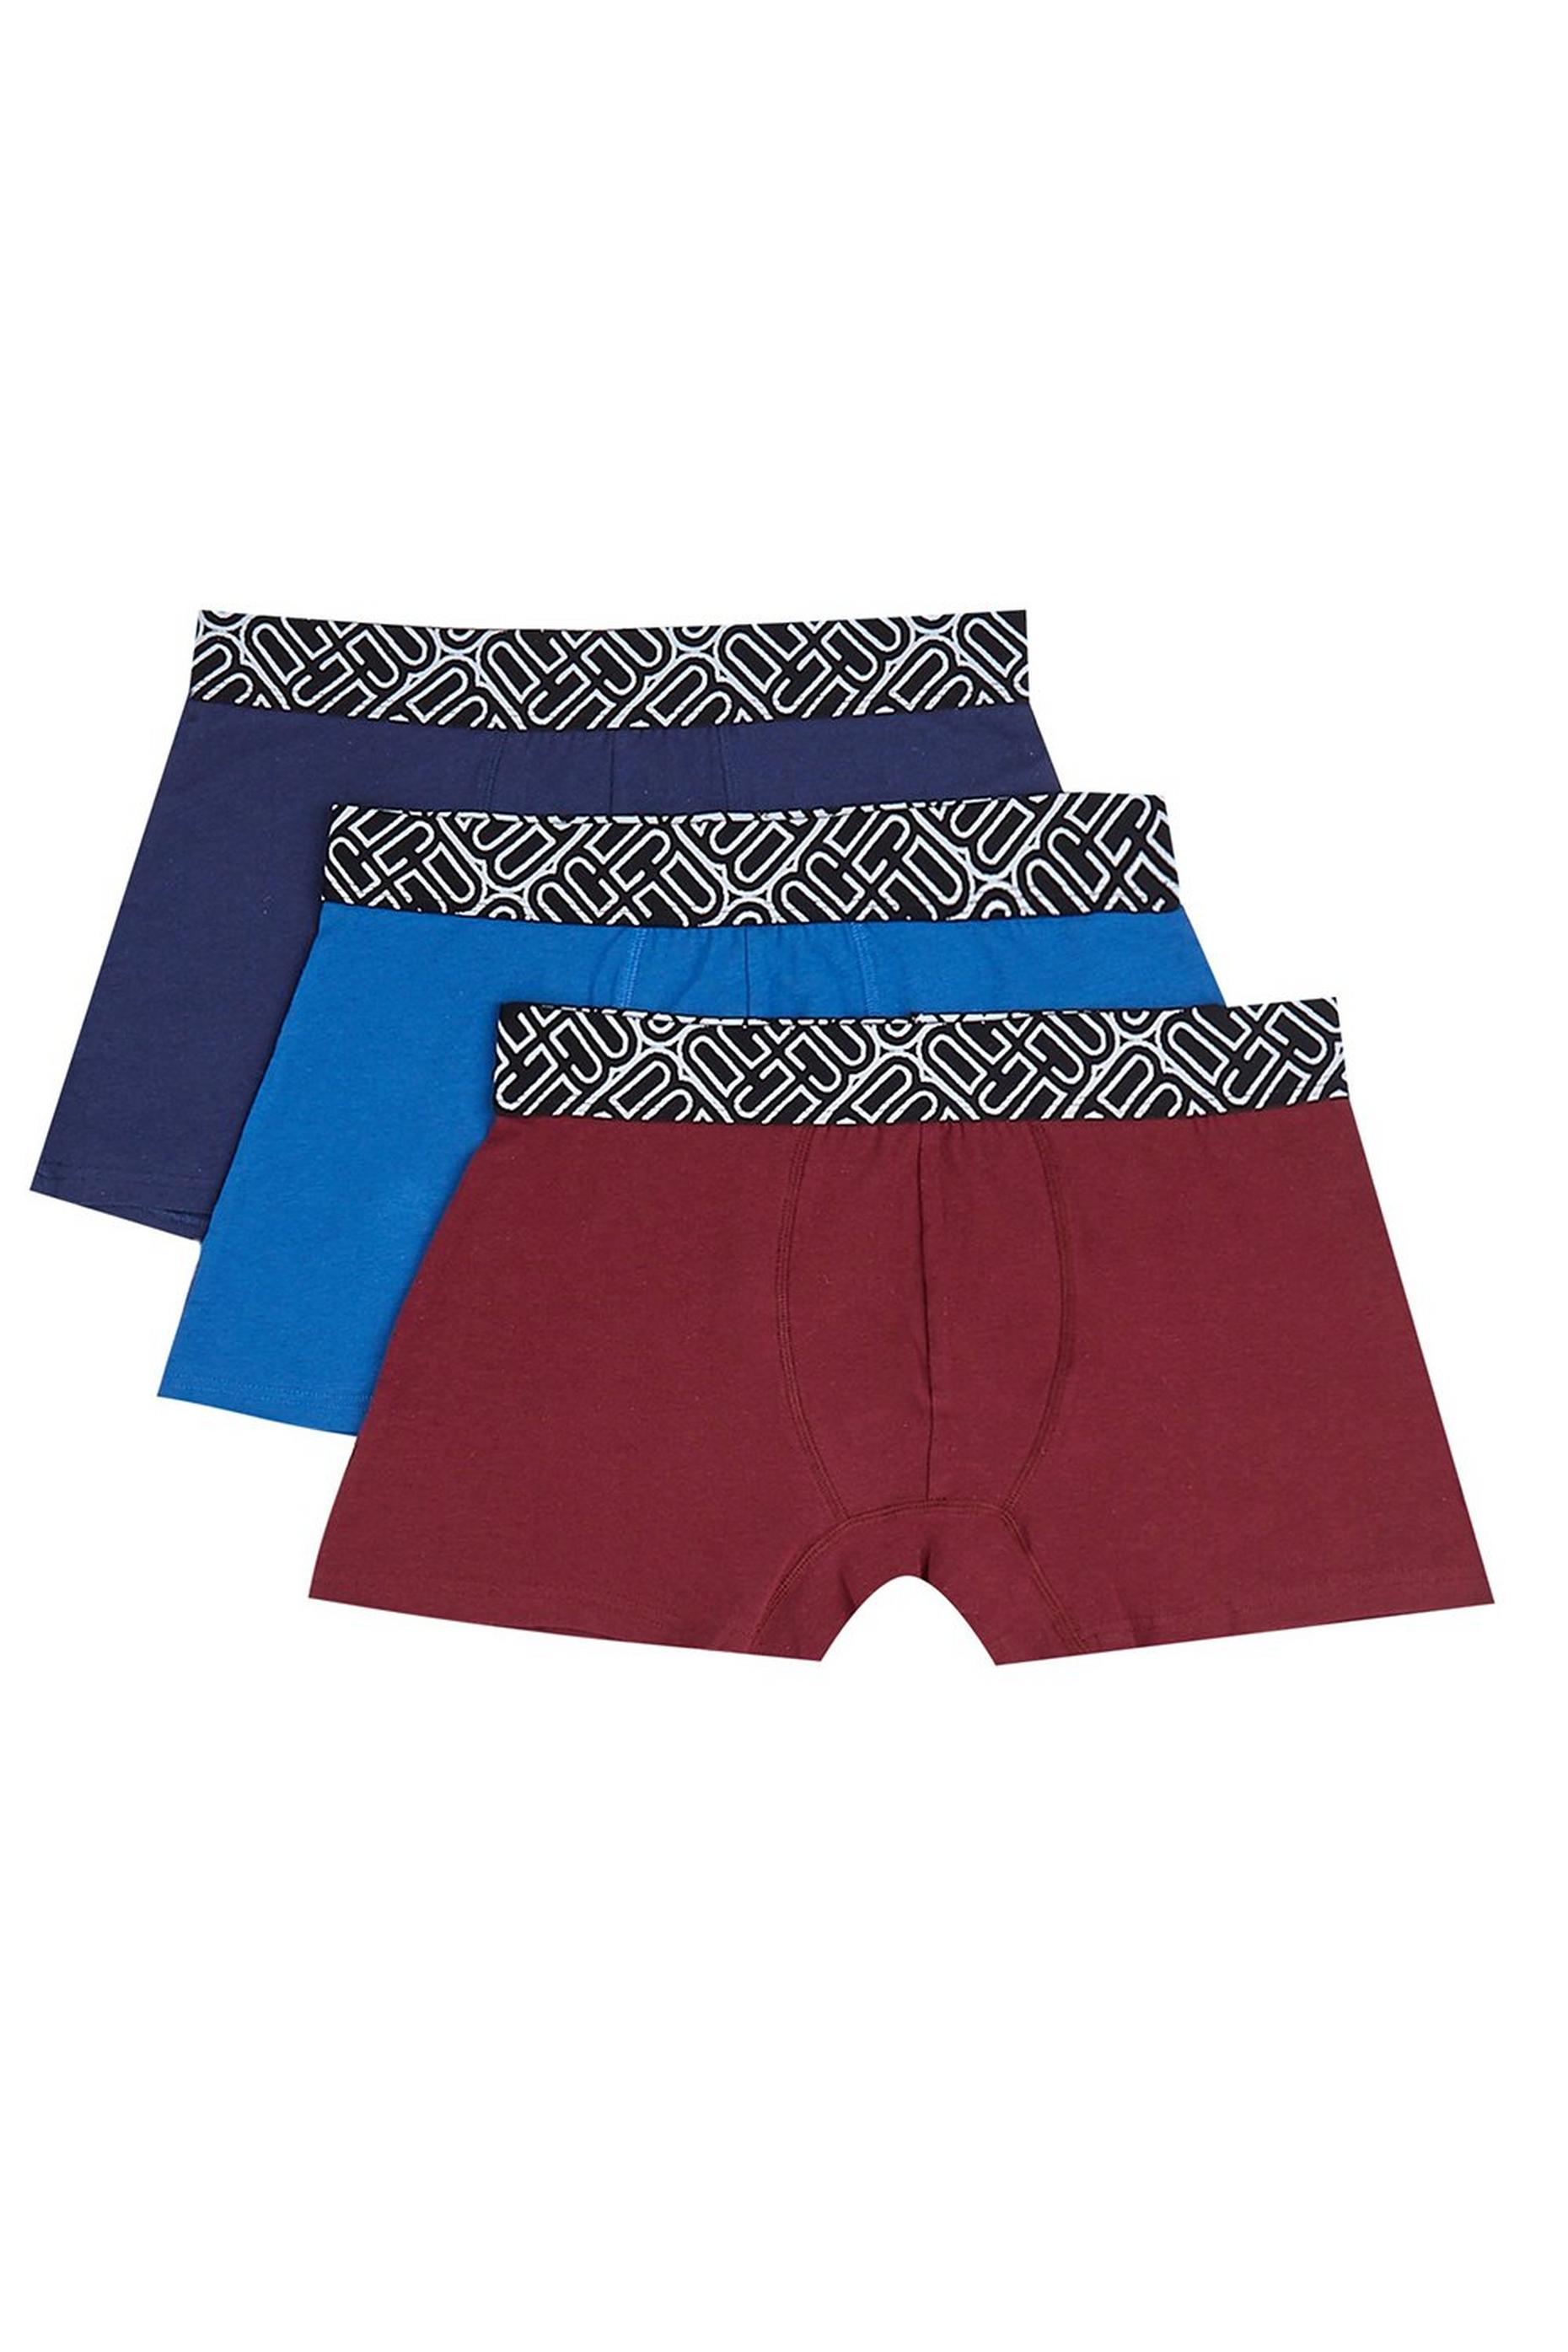 3 Pack Multicolored Jacquard Waistband Trunks